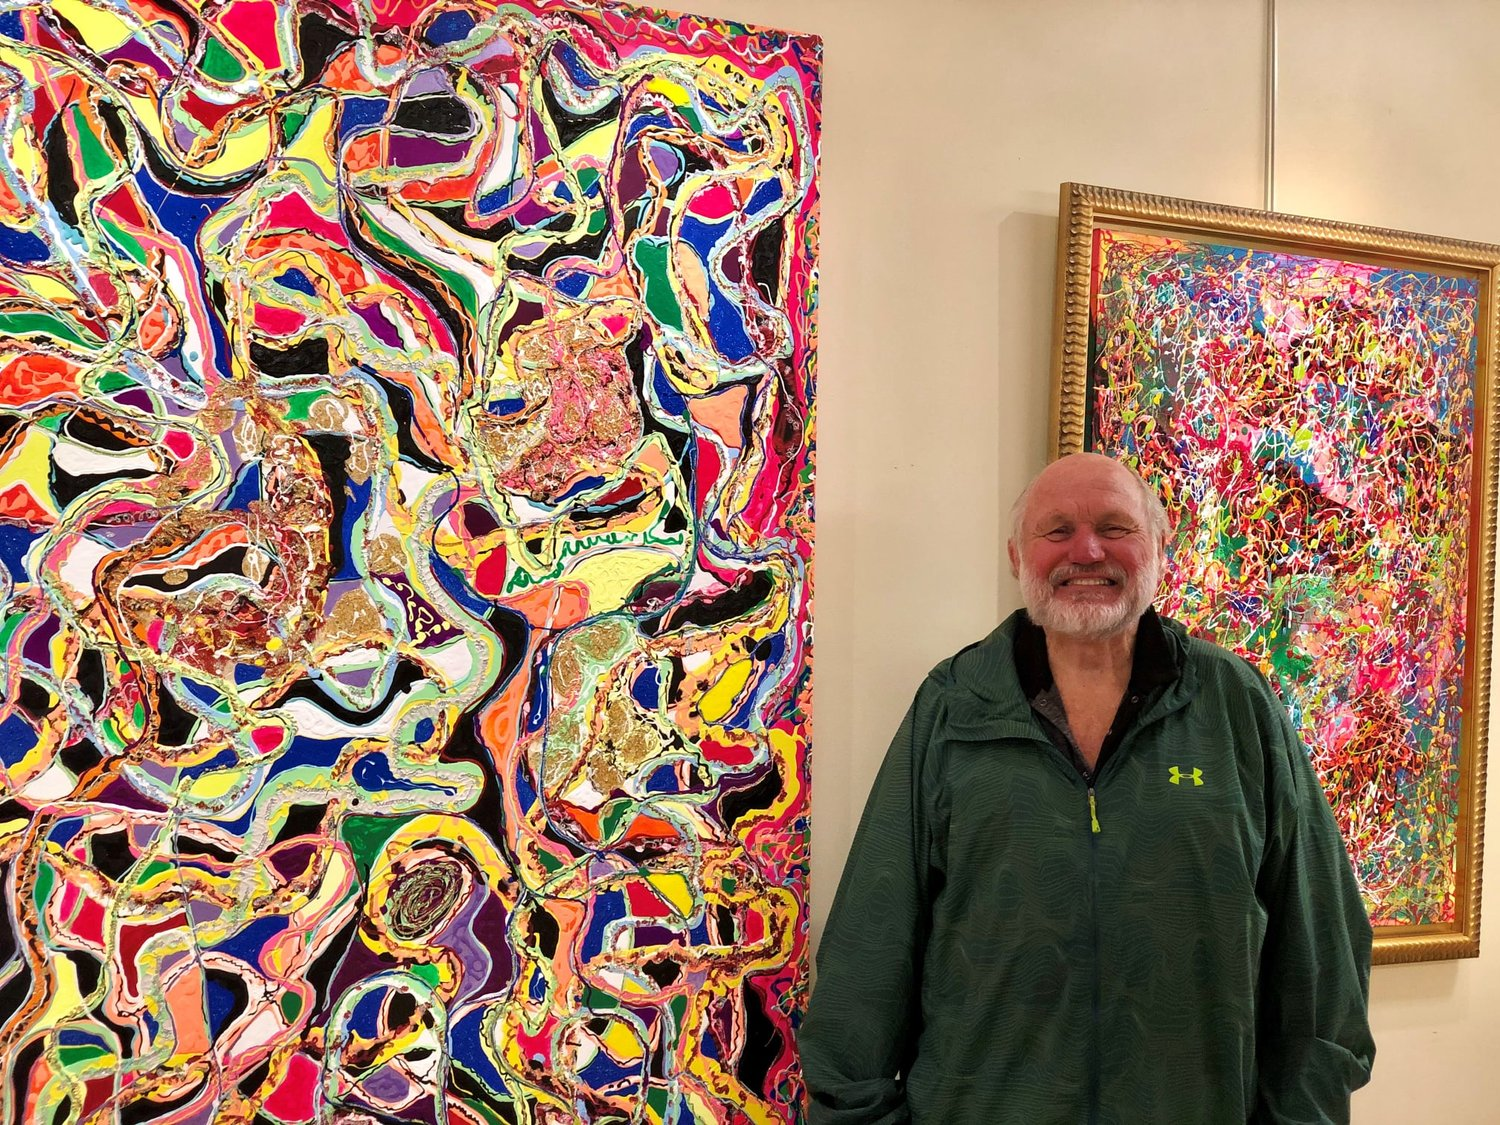 Artist W.T. Stewart is exhibiting his artwork throughout the Smyrna Opera House. Twenty percent of the proceeds from everything he sells during the show will go to the Opera House.